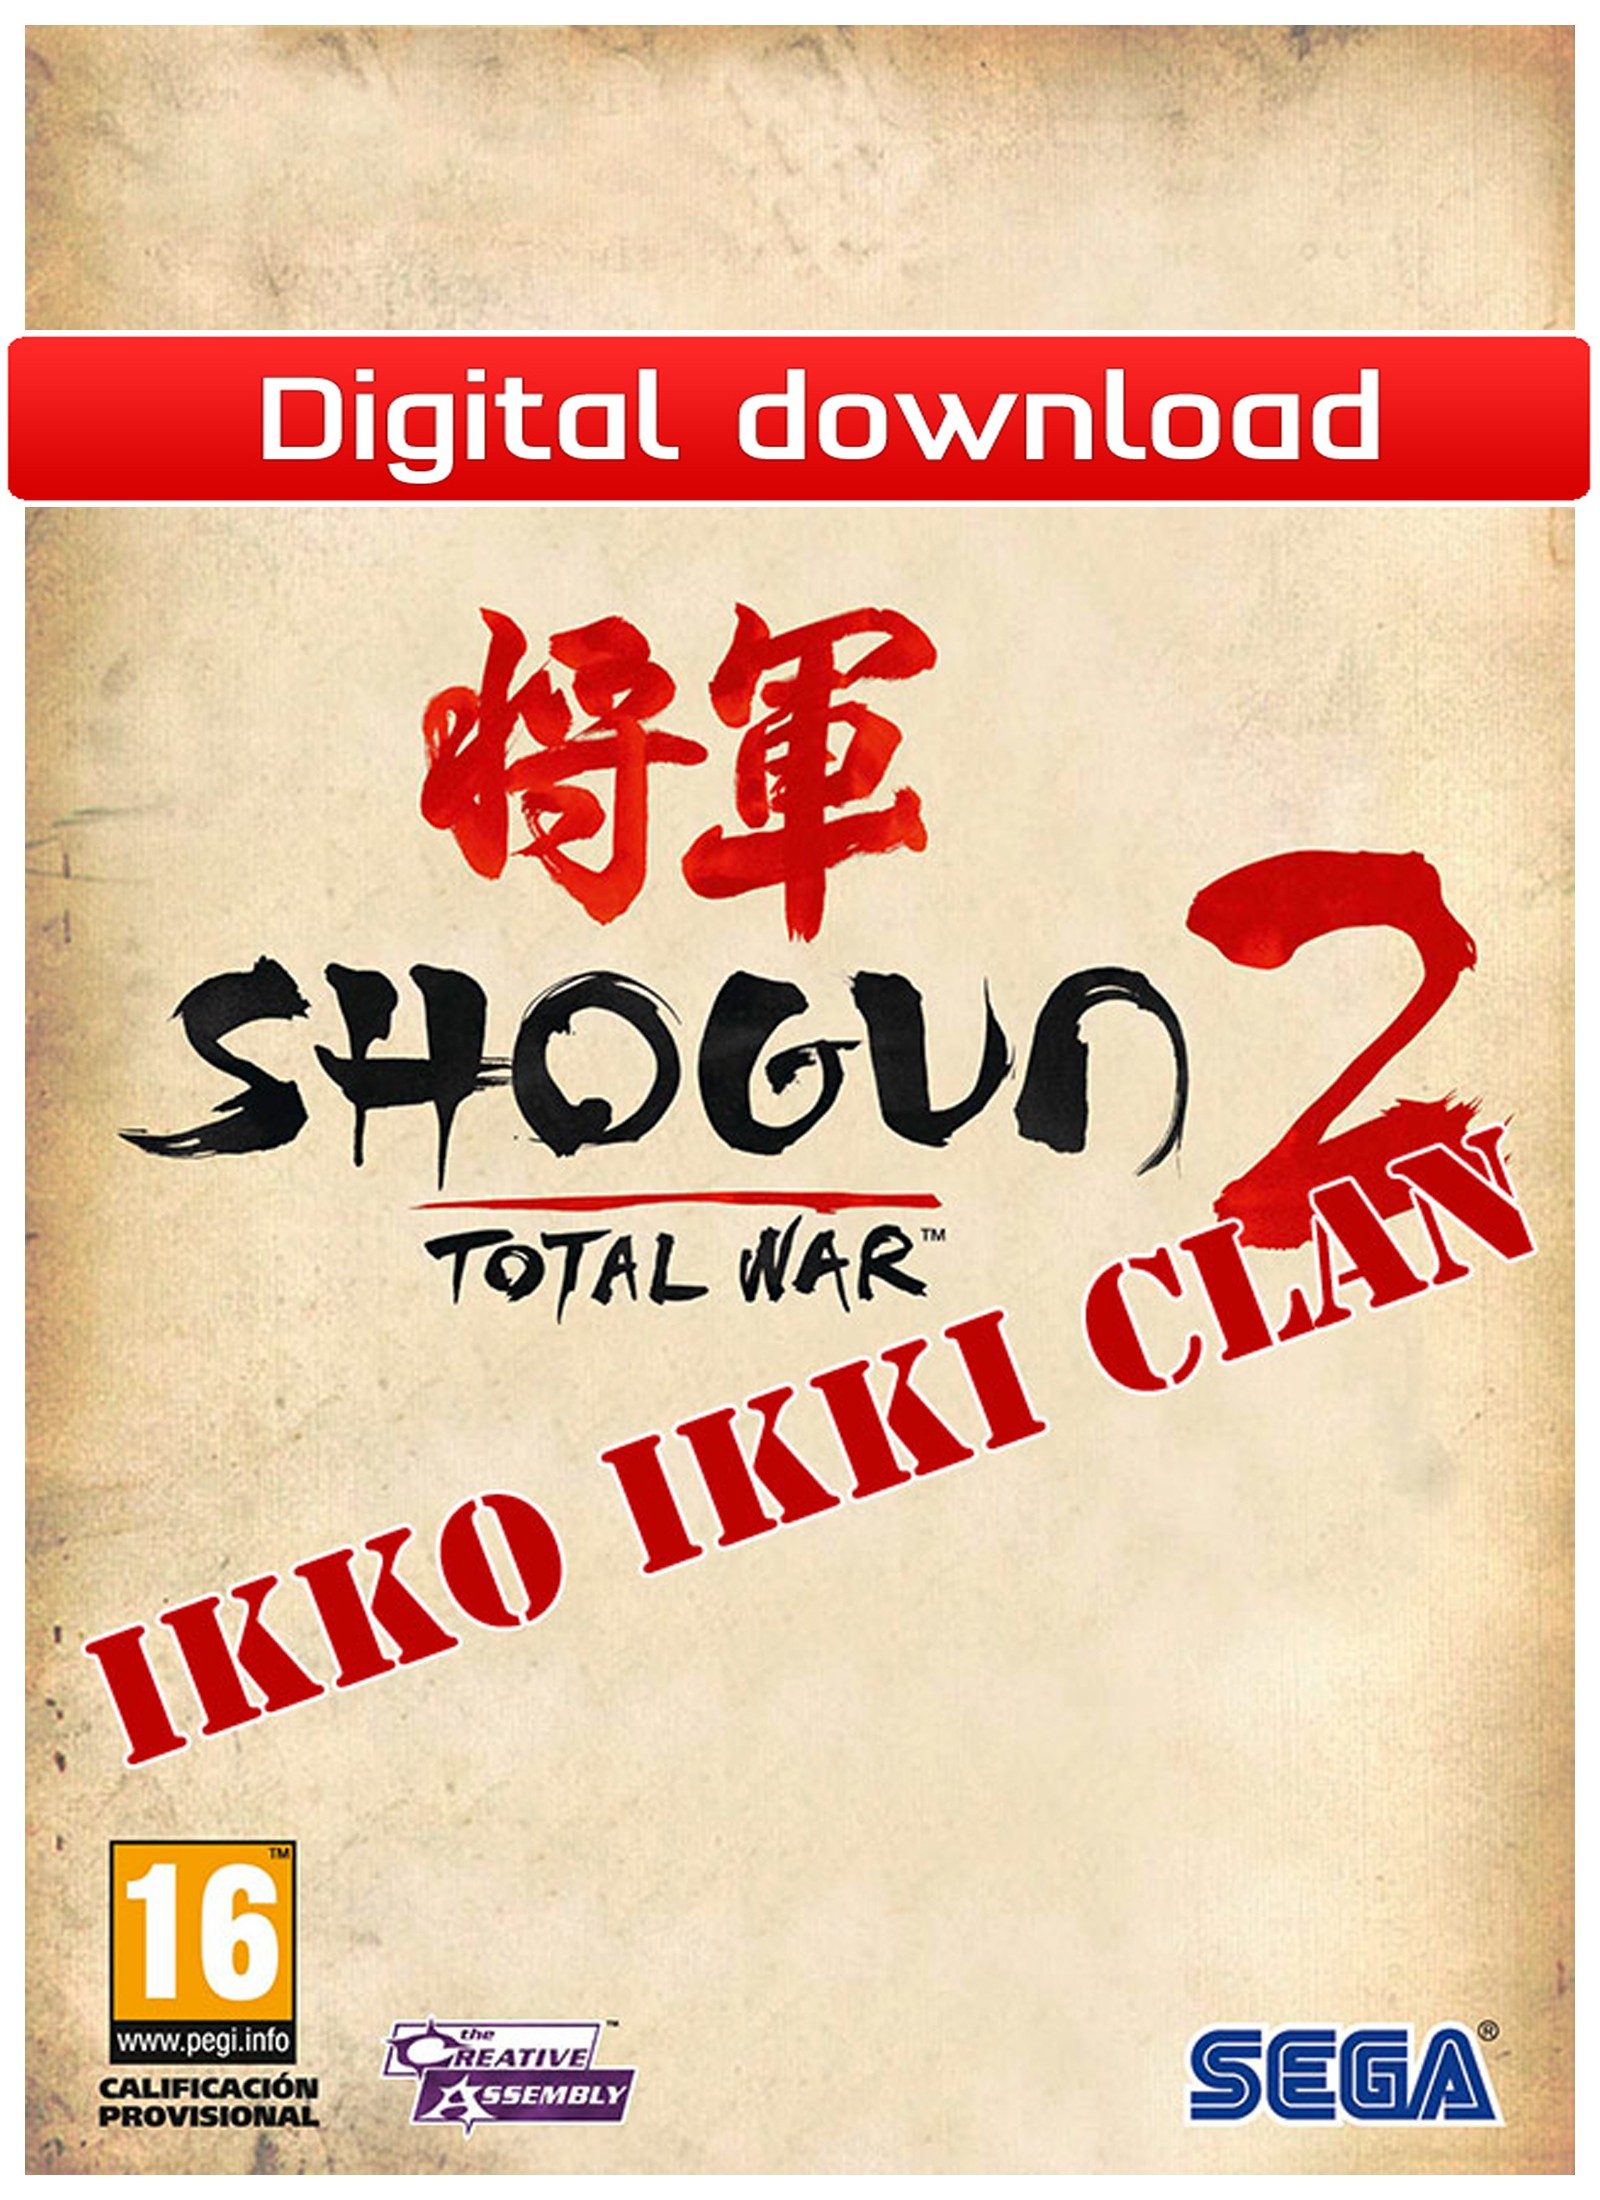 26272 : Total War: Shogun 2: Ikko Ikki Clan (PC nedlastning)